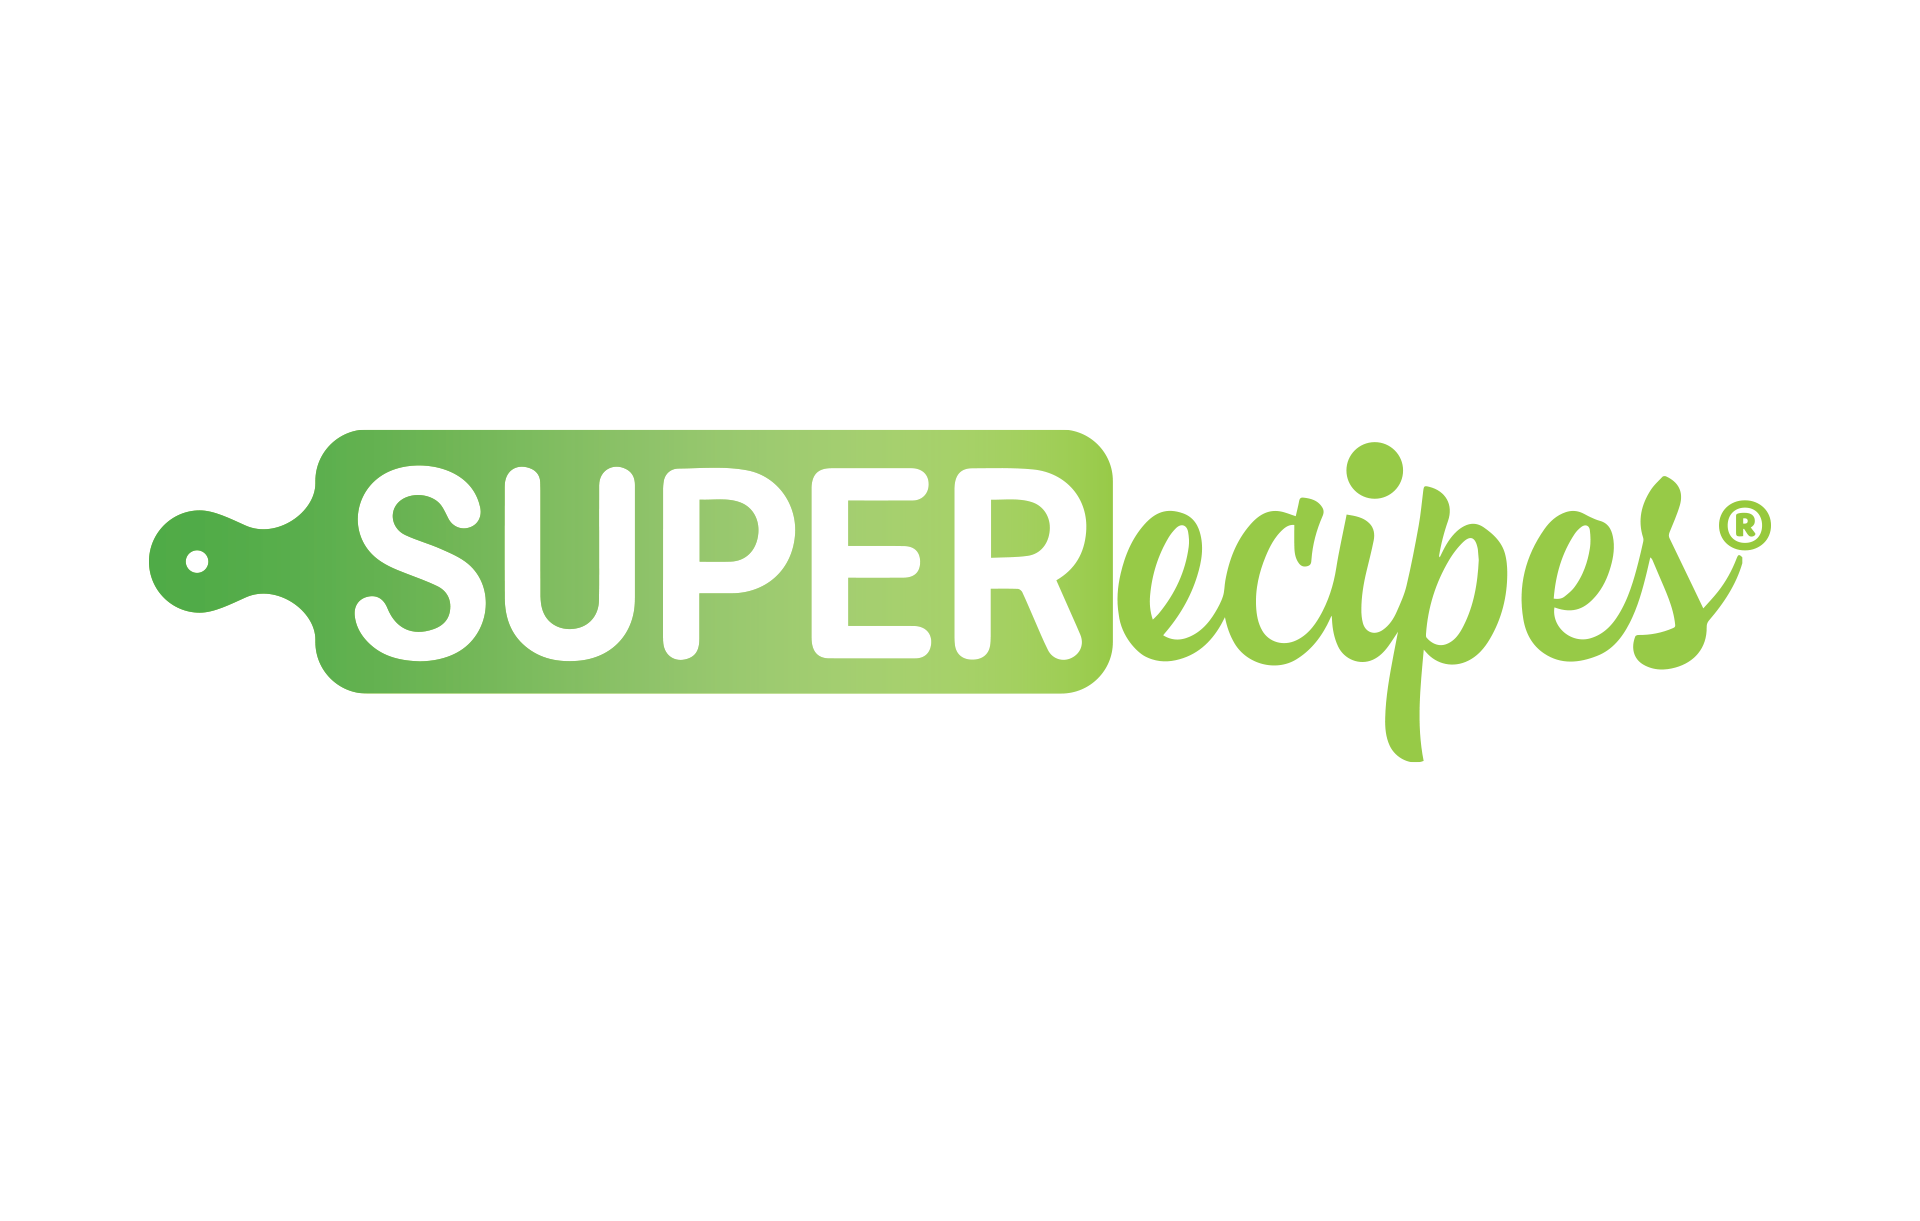 Superecipes Logo by Creatibly's Scott Luscombe